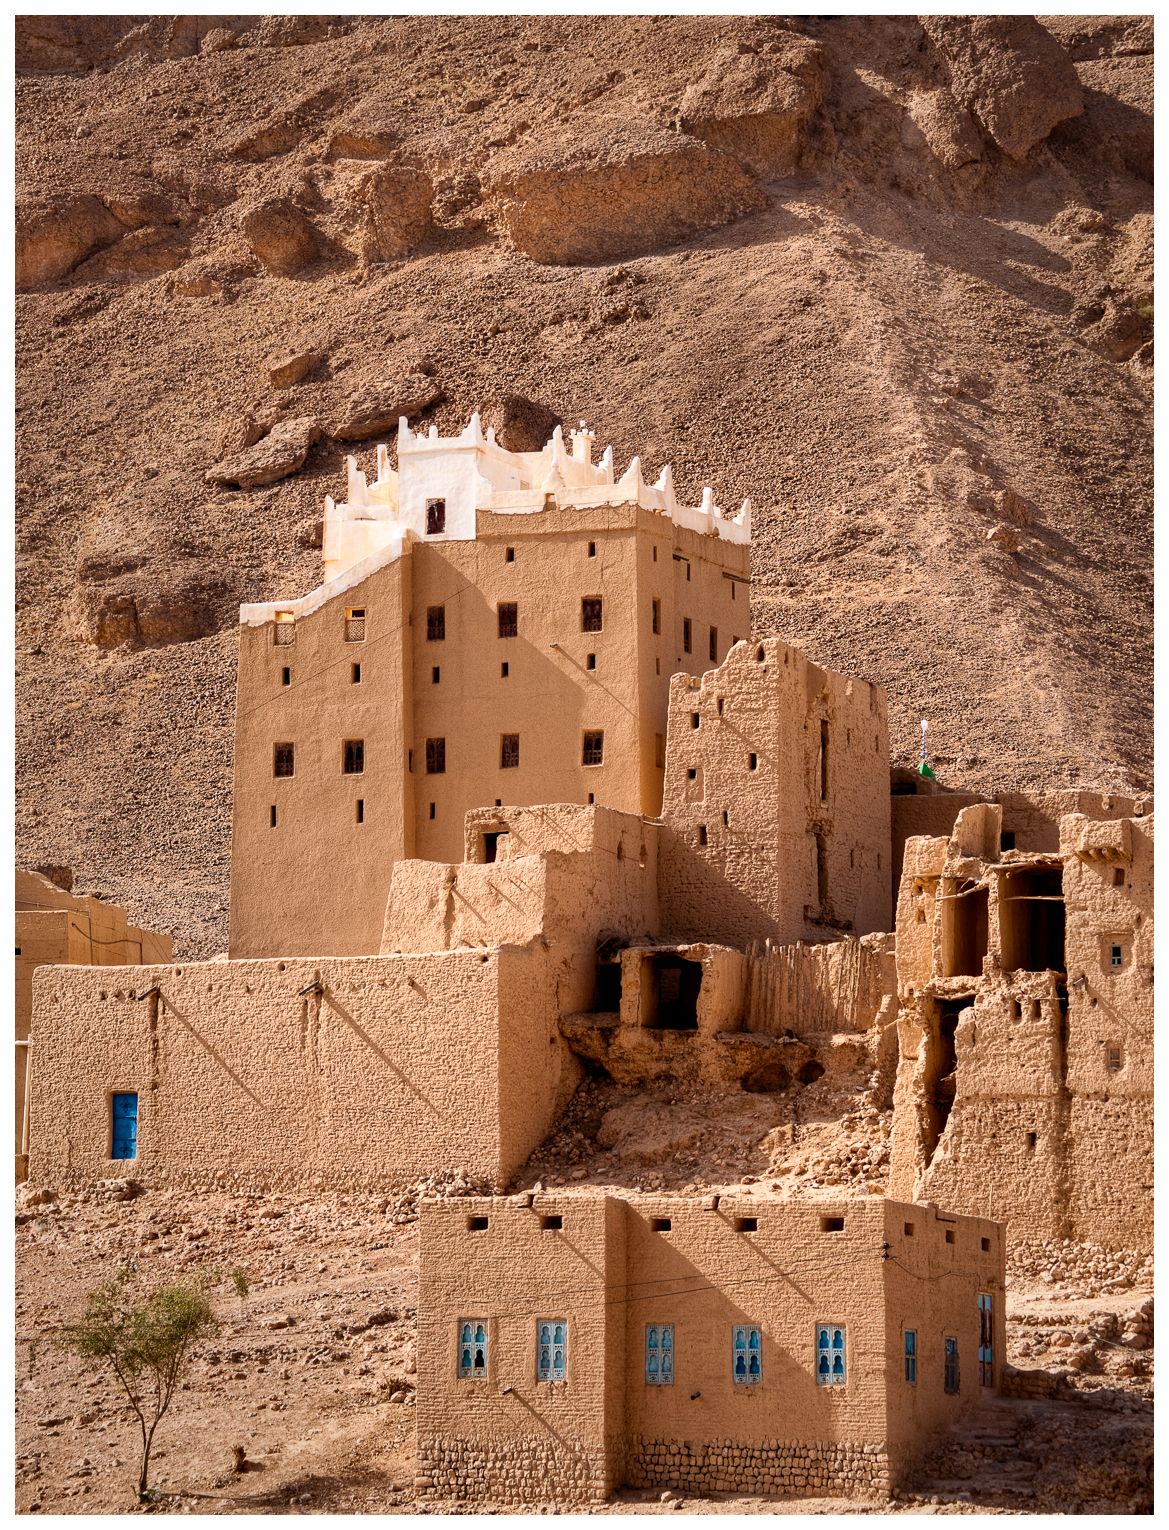 40Mud Brick Buildings, Wadi Doa'an_DSC4941.jpg